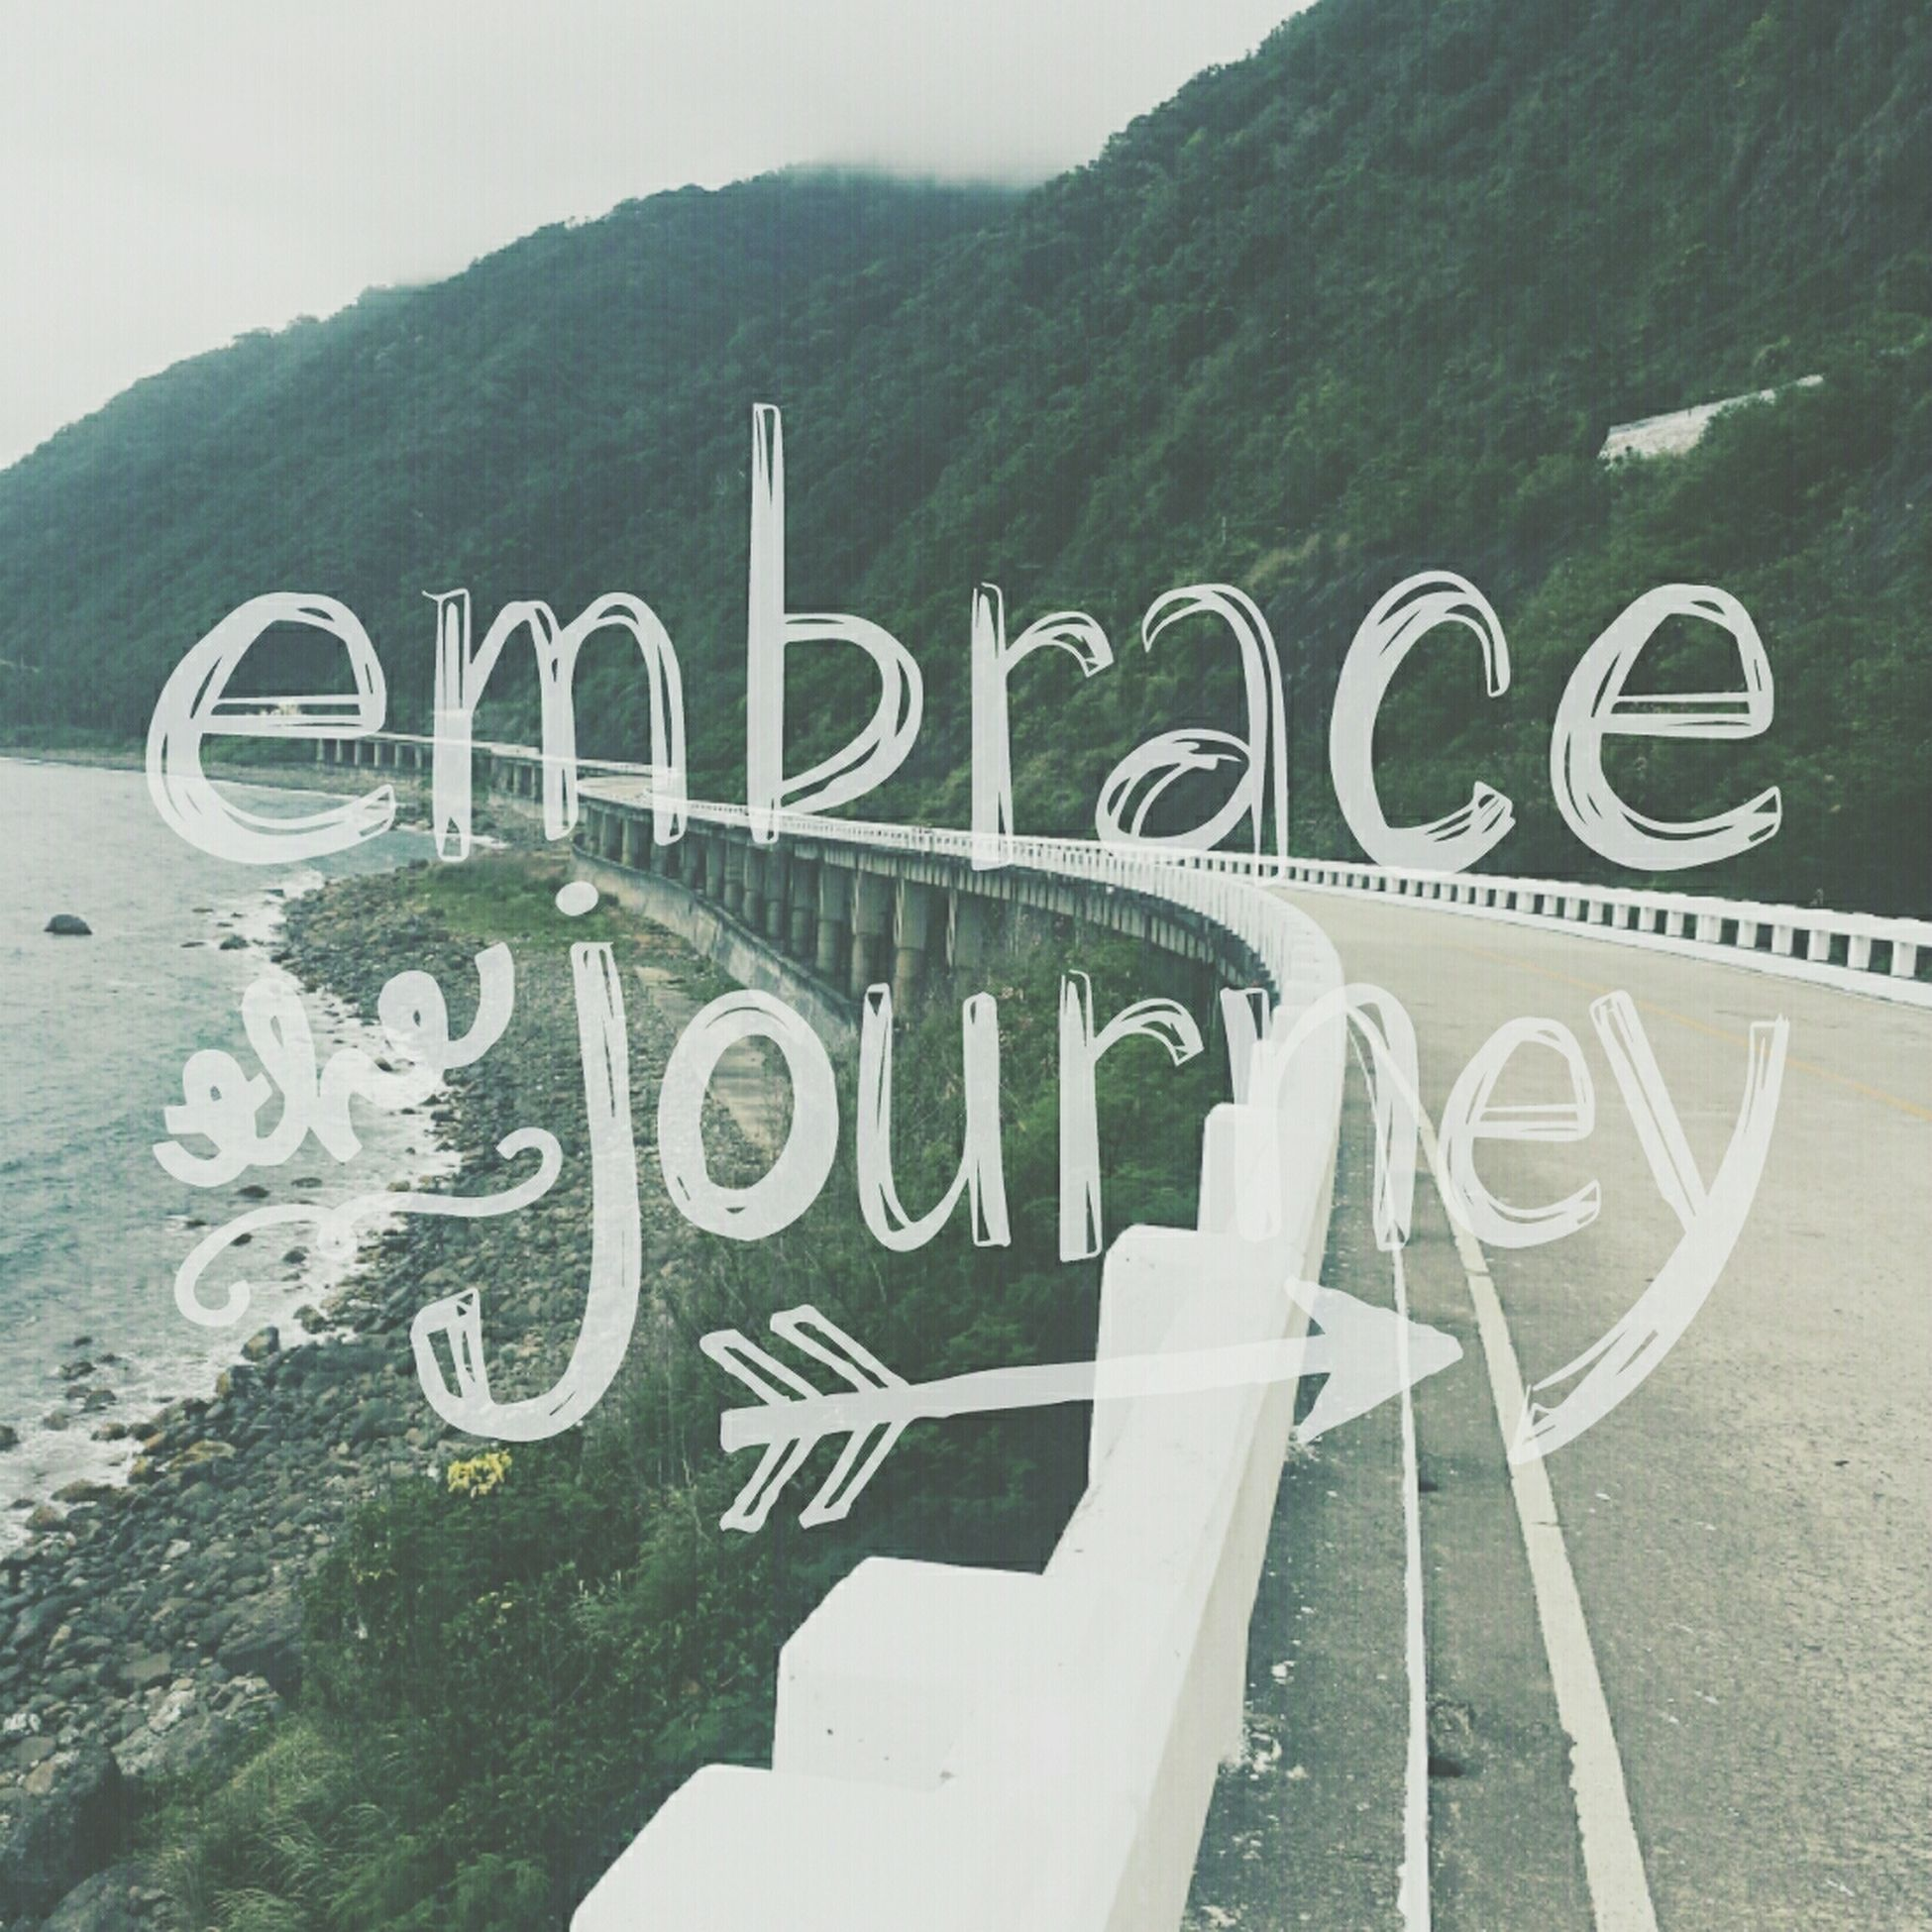 Embrace journey. Embrace life. More Travel to come. Travel Photography